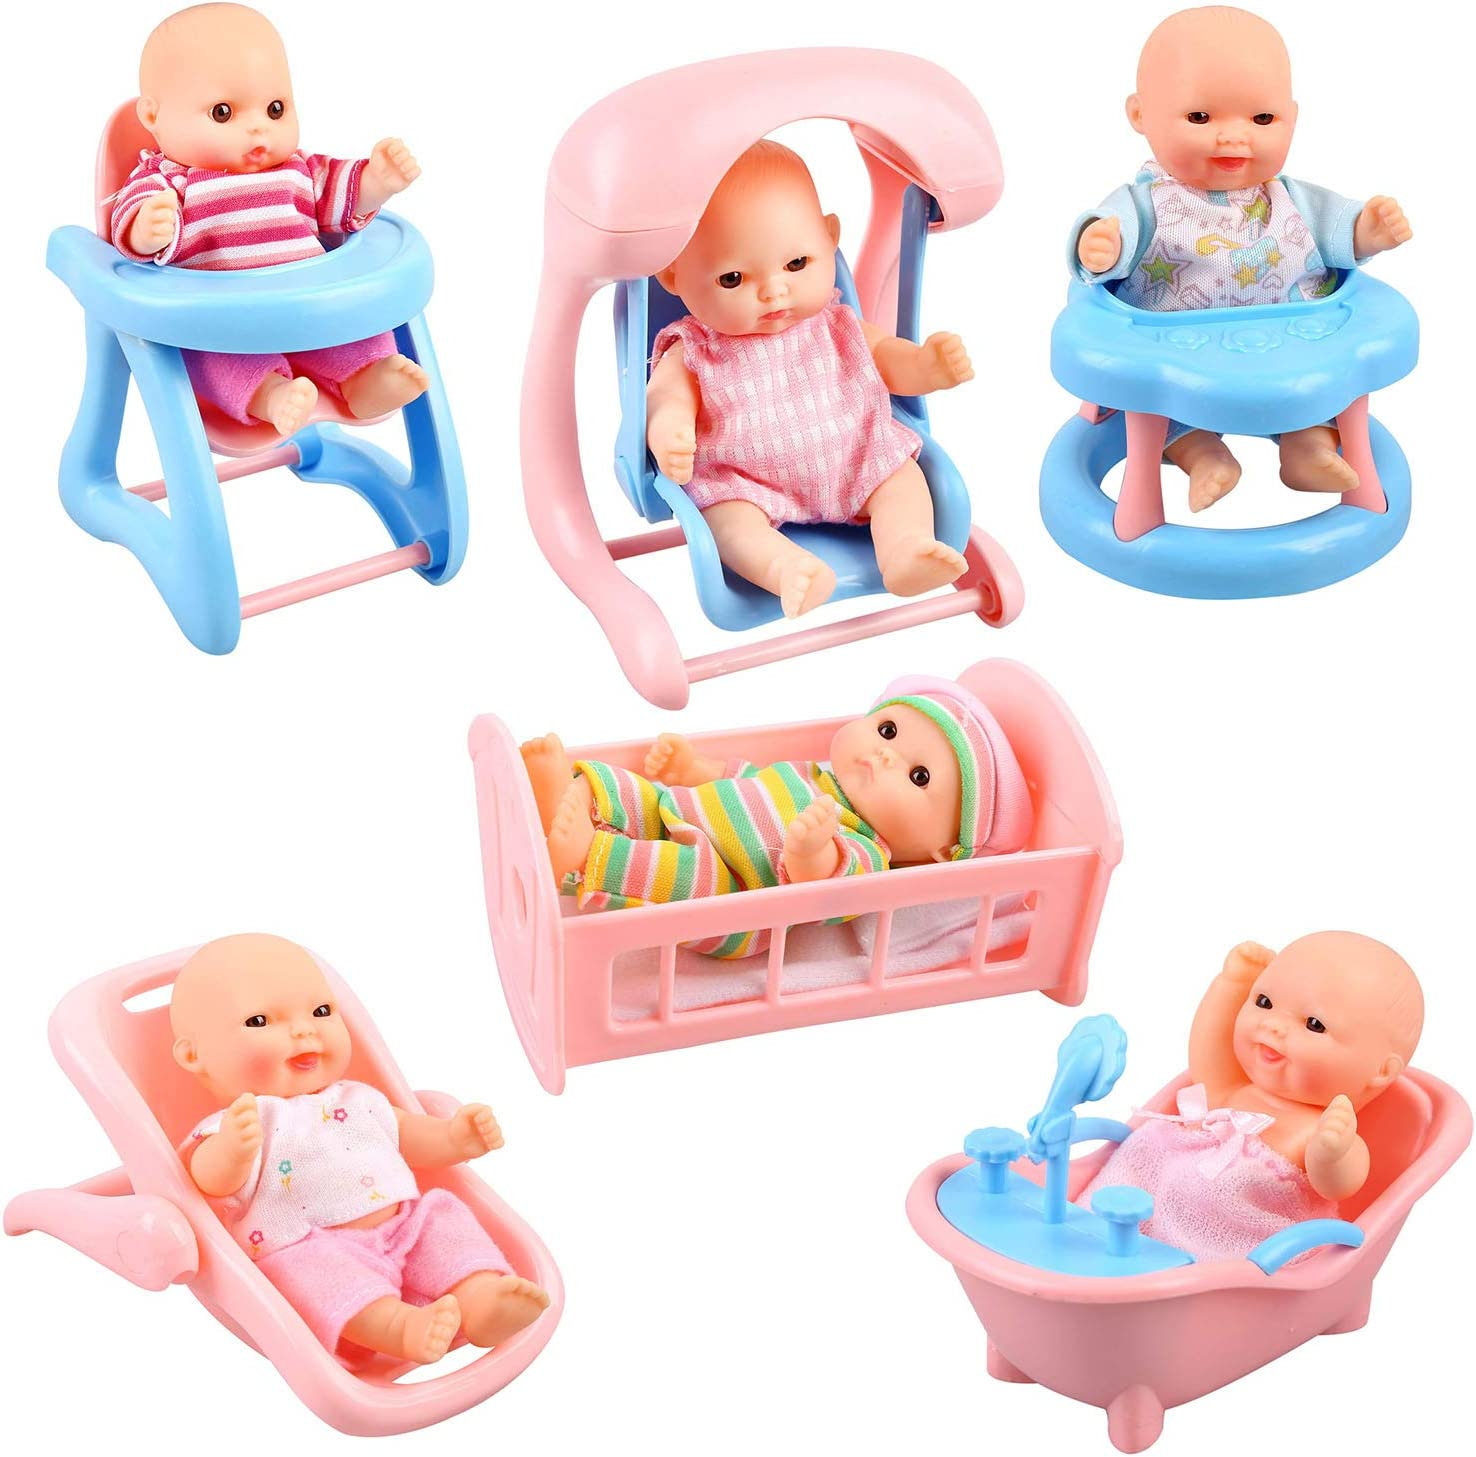 Urban Kit Set of 6 Mini Dolls for Girls with Accessories | Mini Baby Doll Accessories| Little Babies Dolls | Small Baby Dolls for Girls | Mini Toys for Girl